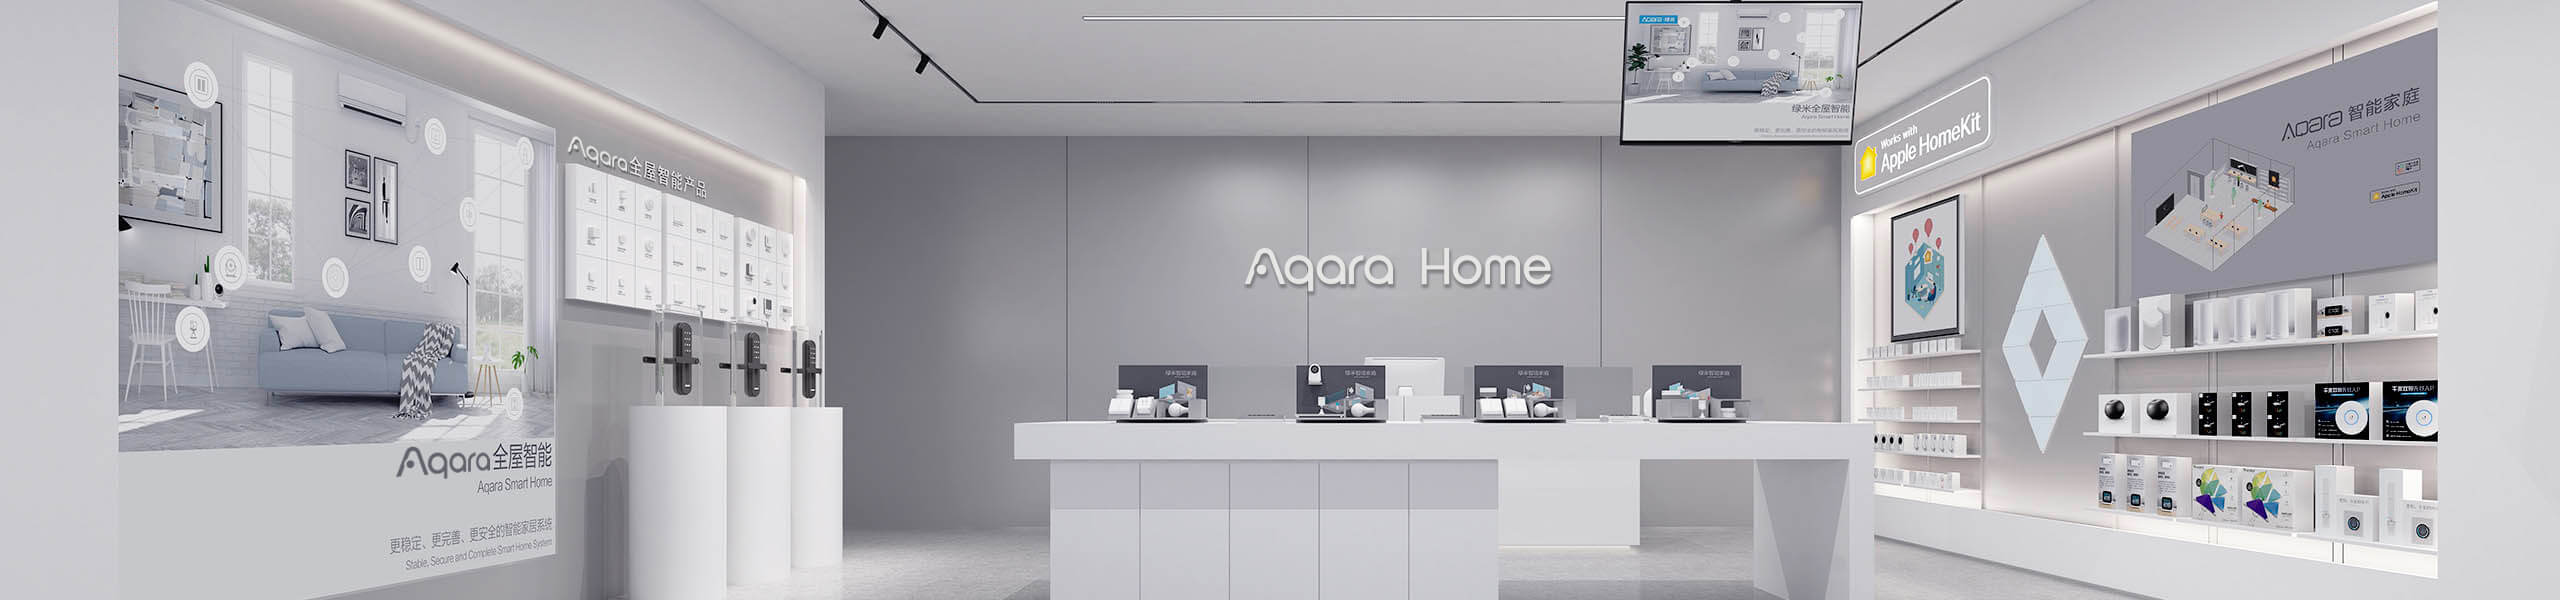 Aqara Smart Home Solution